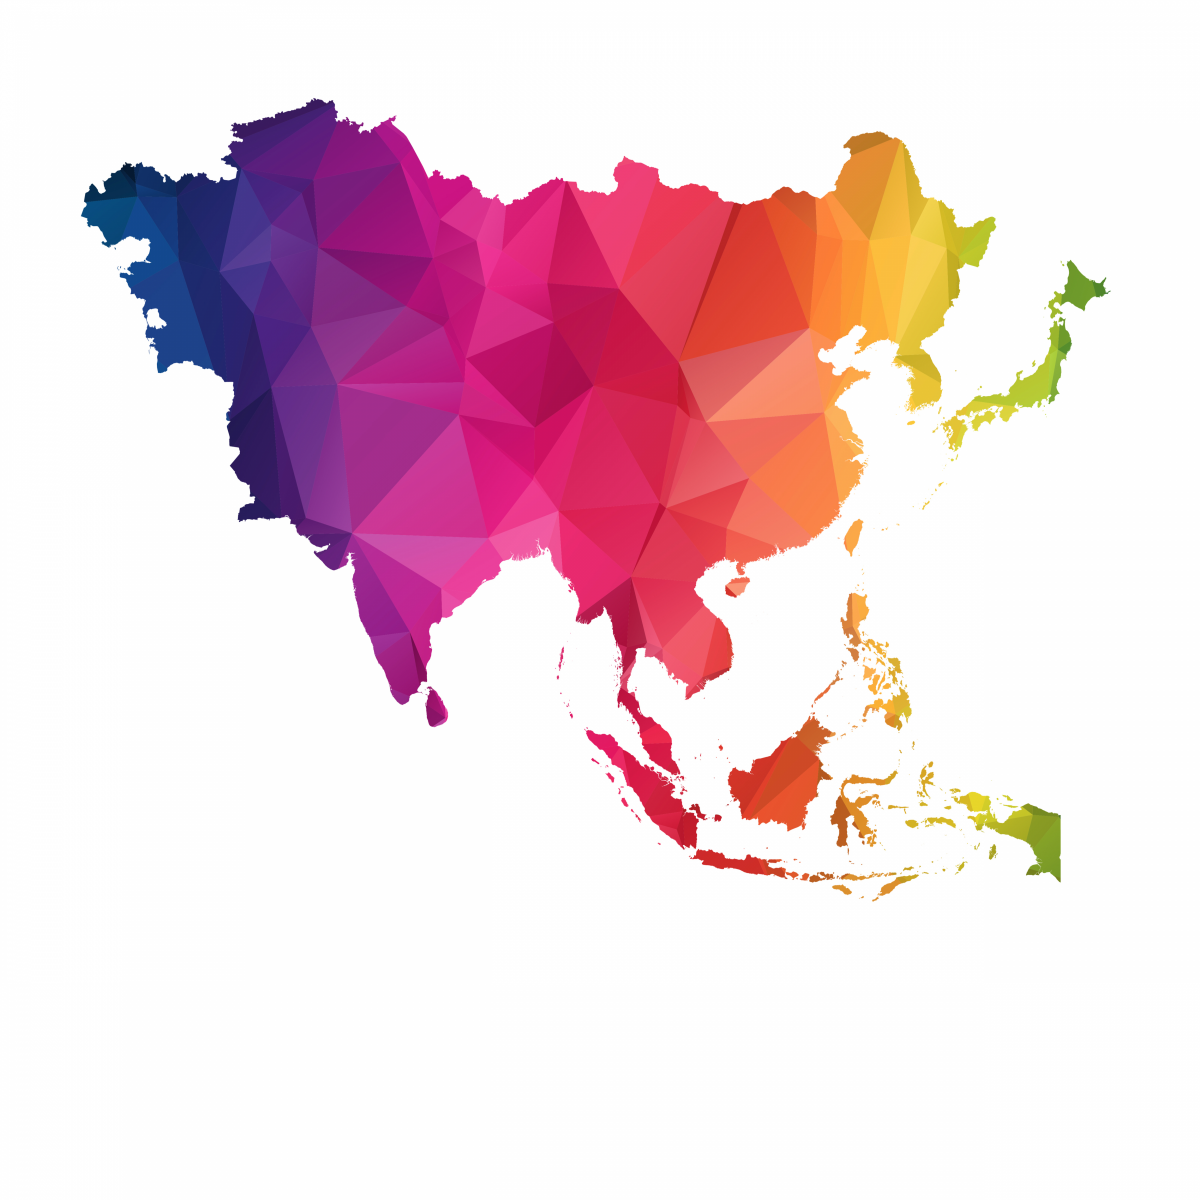 150318-image-asia_1.png